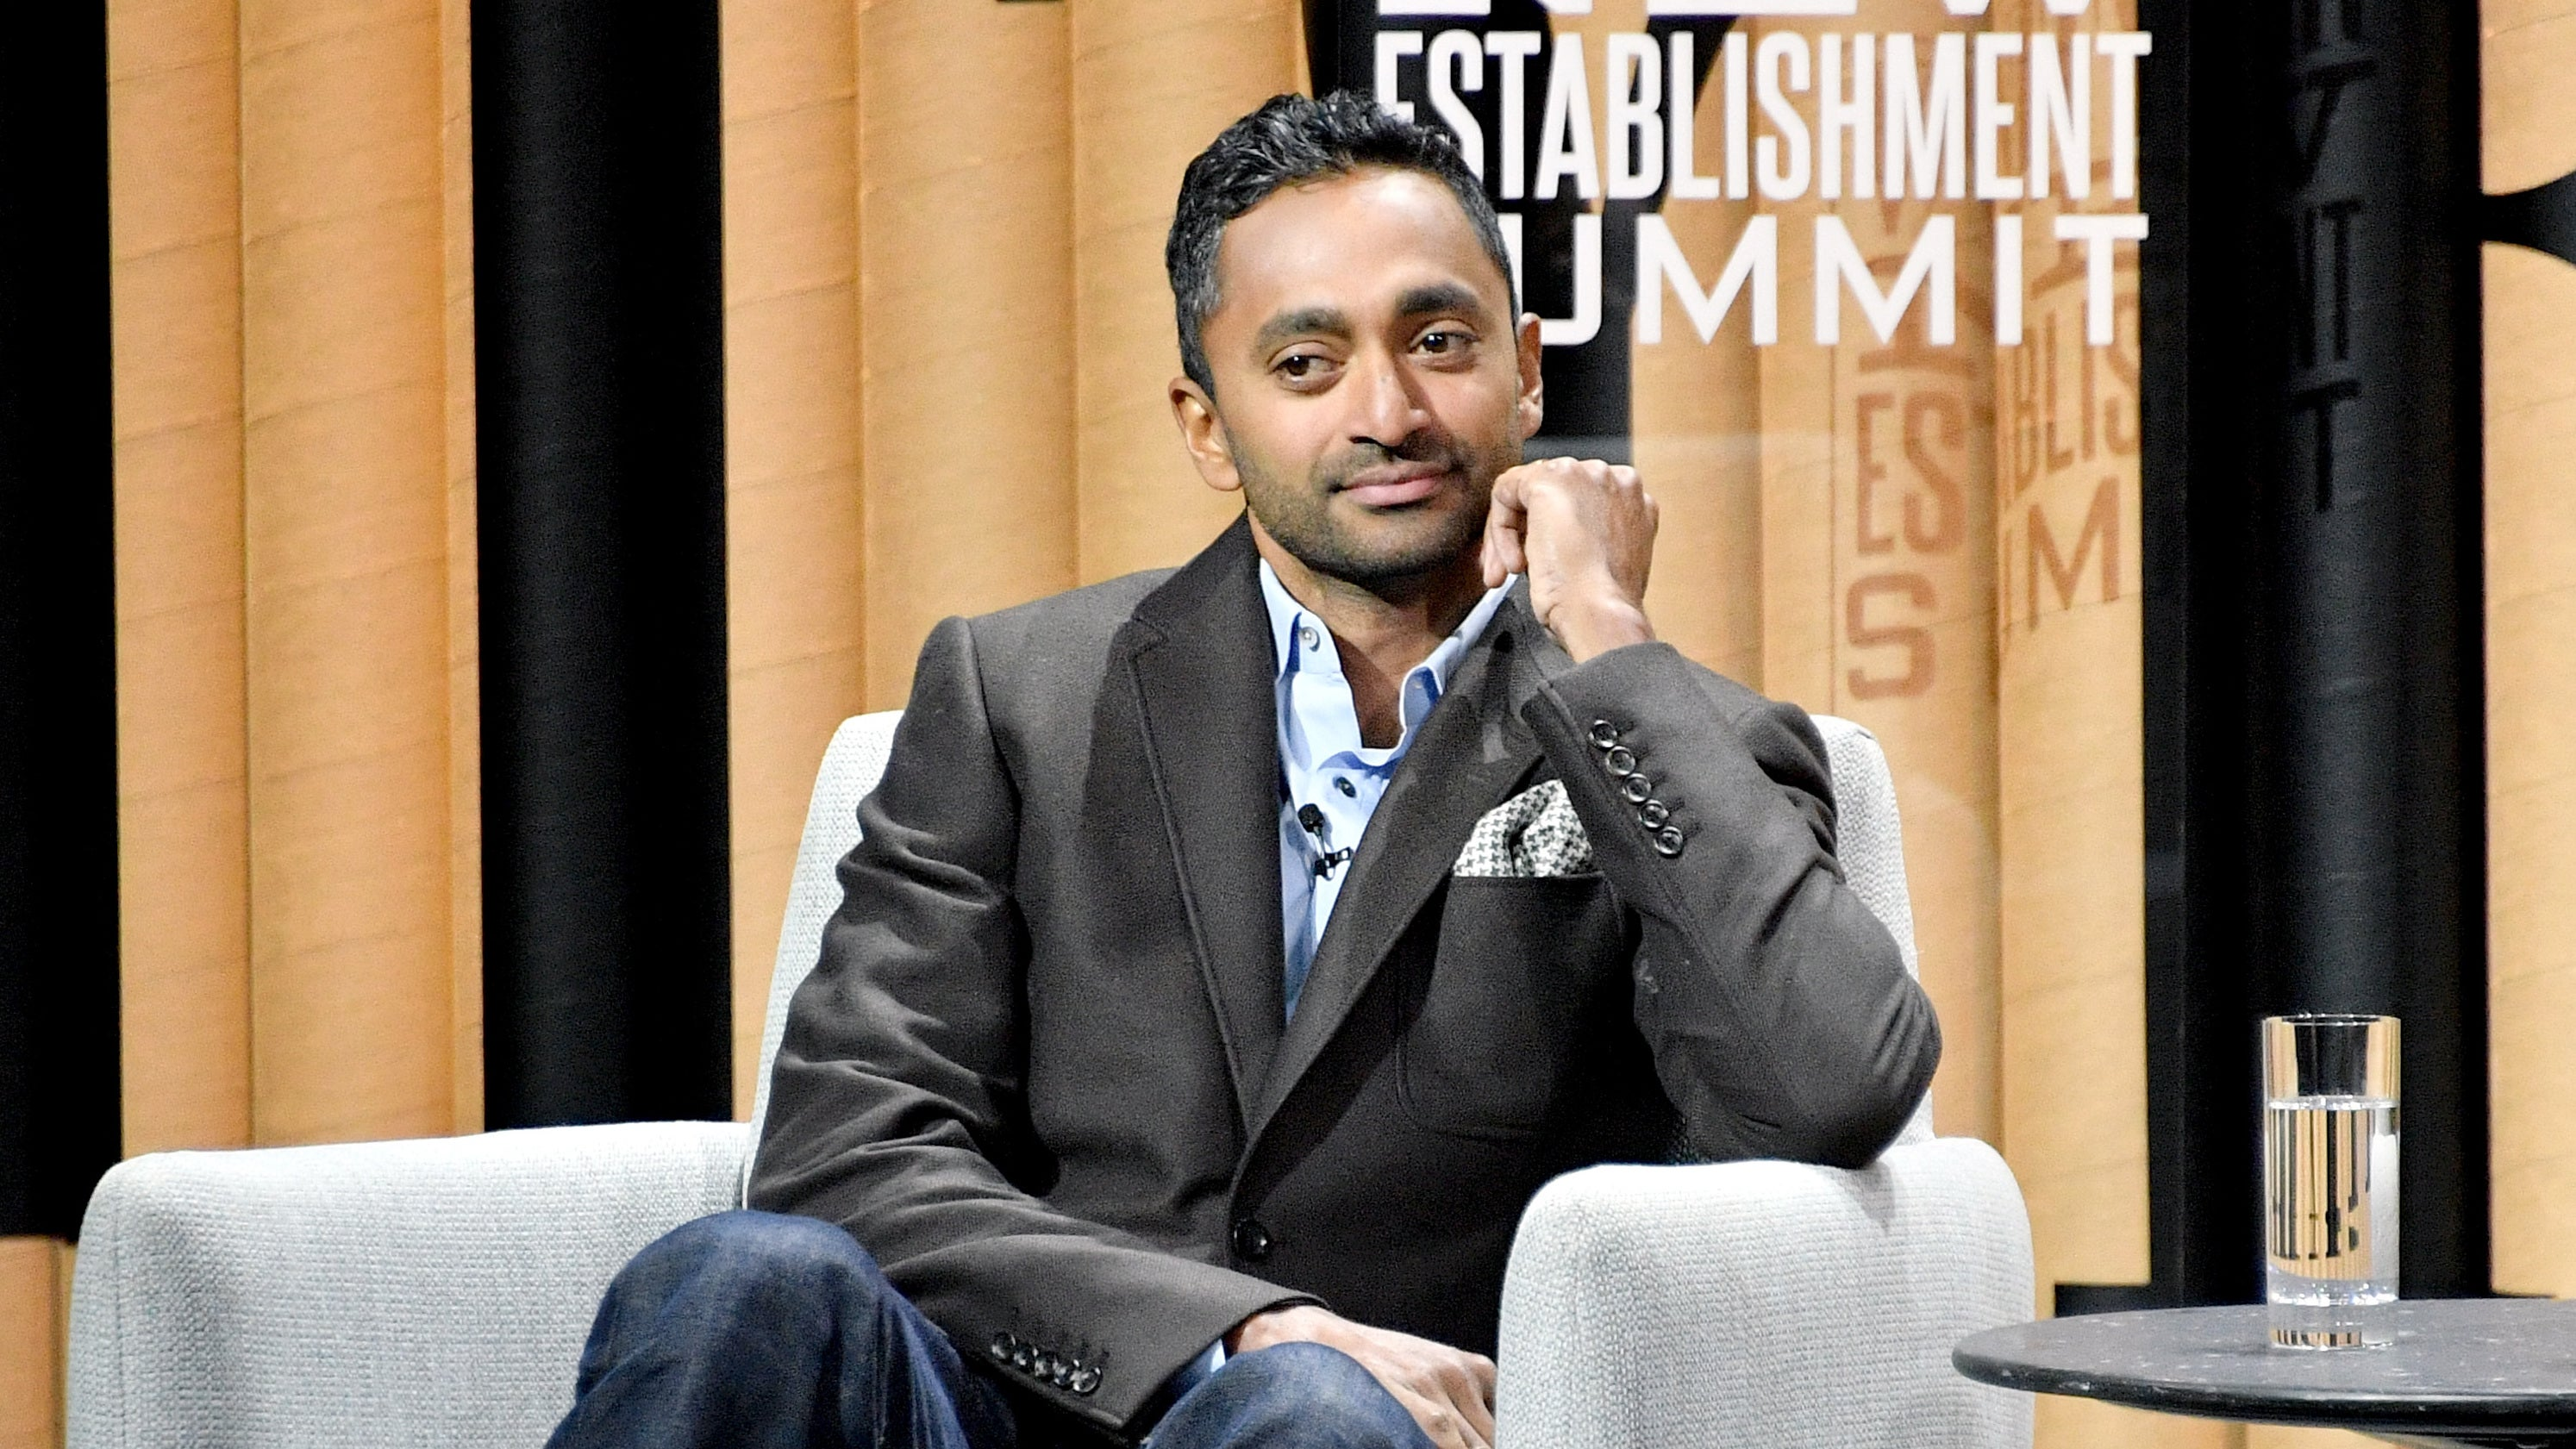 Former Facebook Exec: 'You Don't Realise It But You Are Being Programmed'